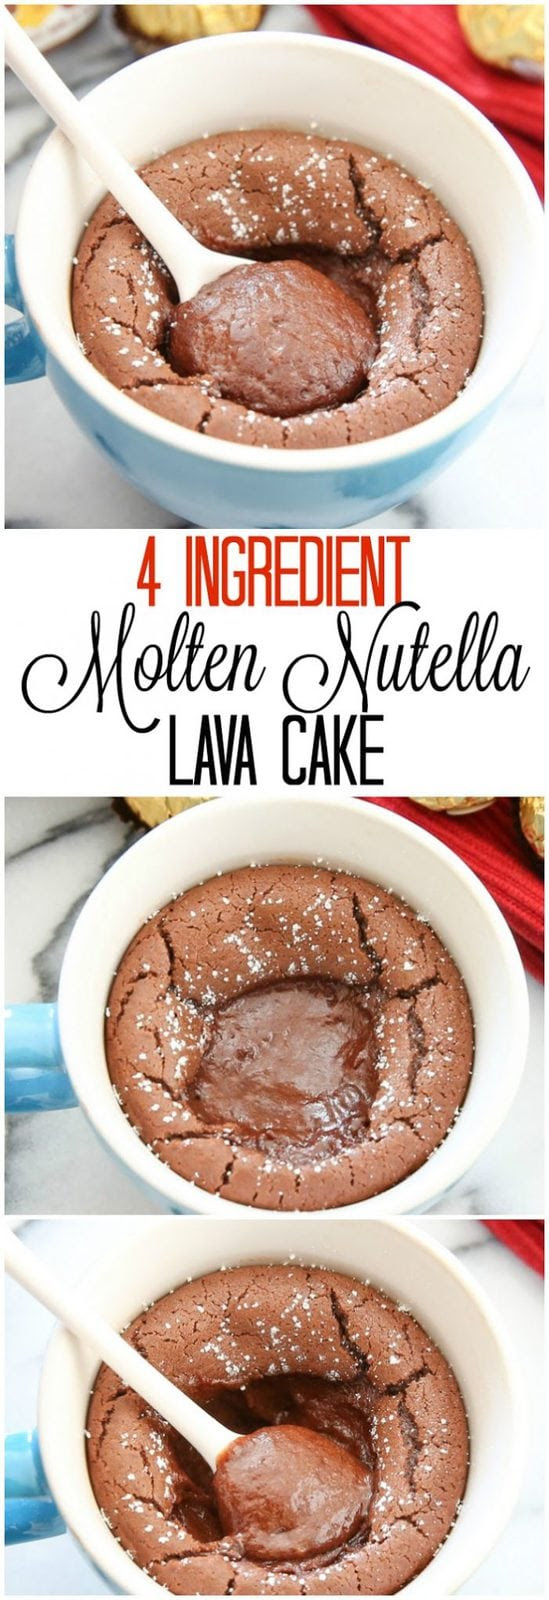 4 Ingredient Molten Nutella Lava Mug Cake - Kirbie's Cravings